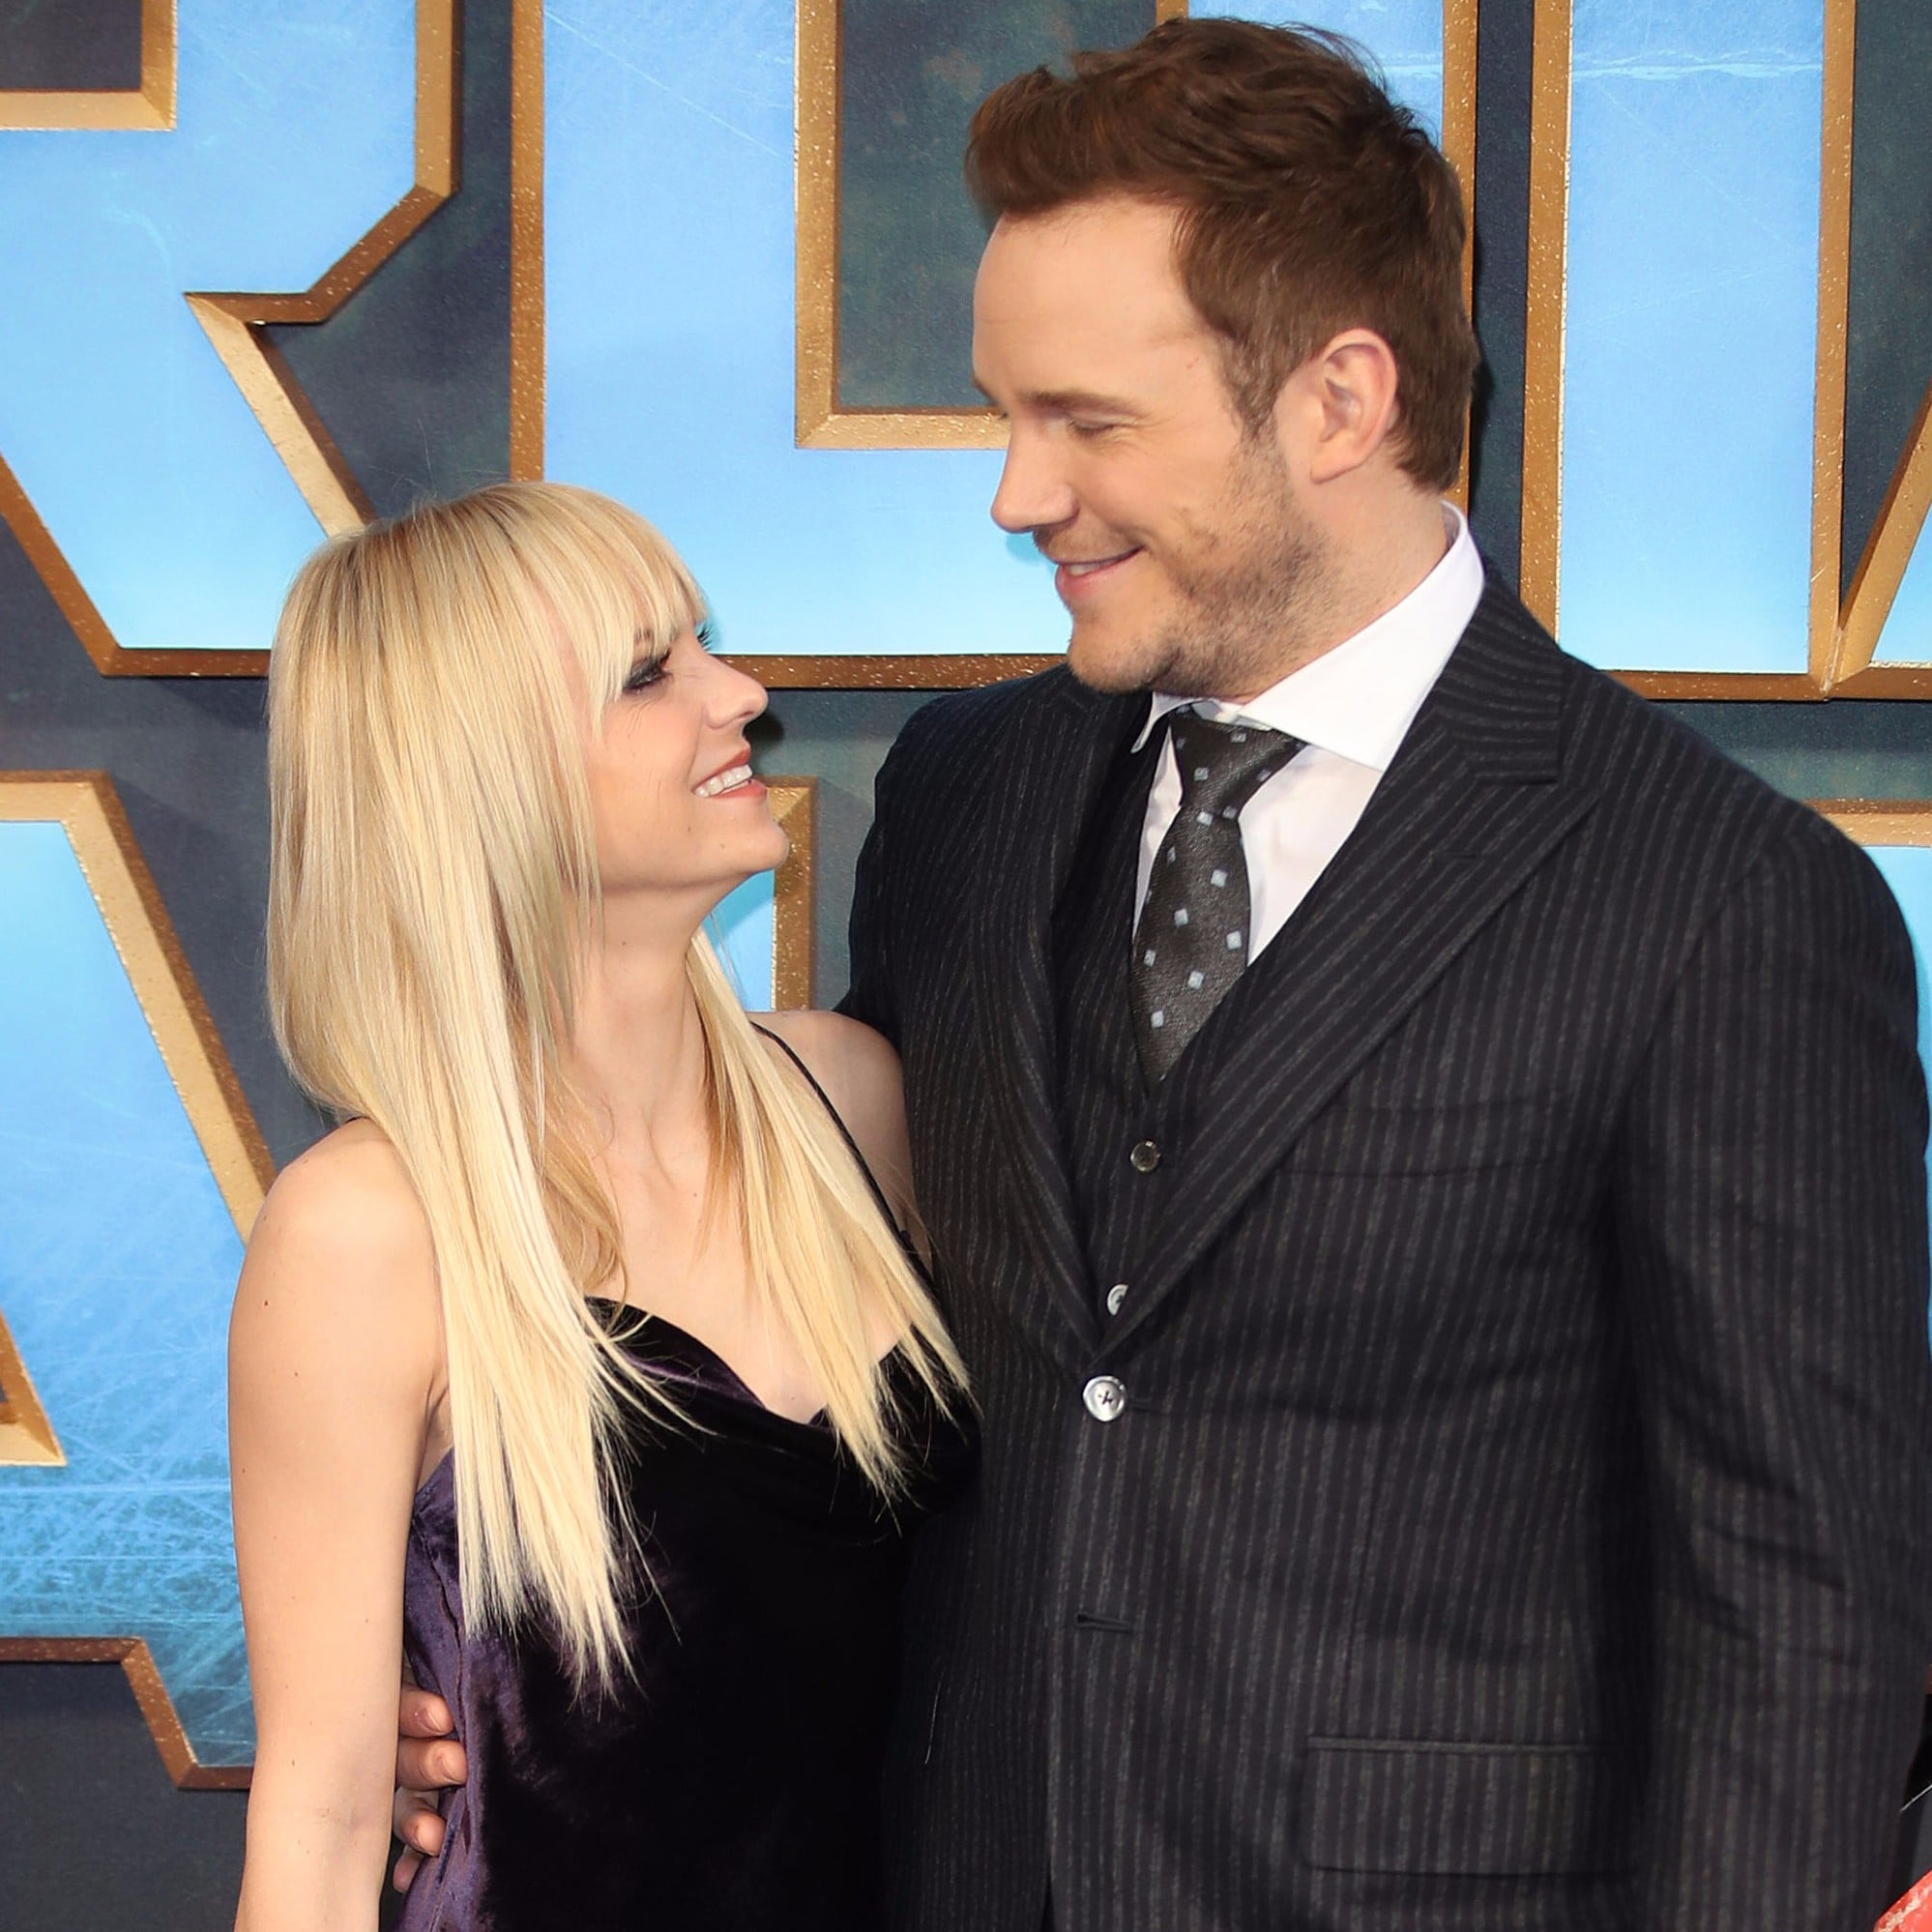 Anna Faris On Her Split With Chris Pratt: